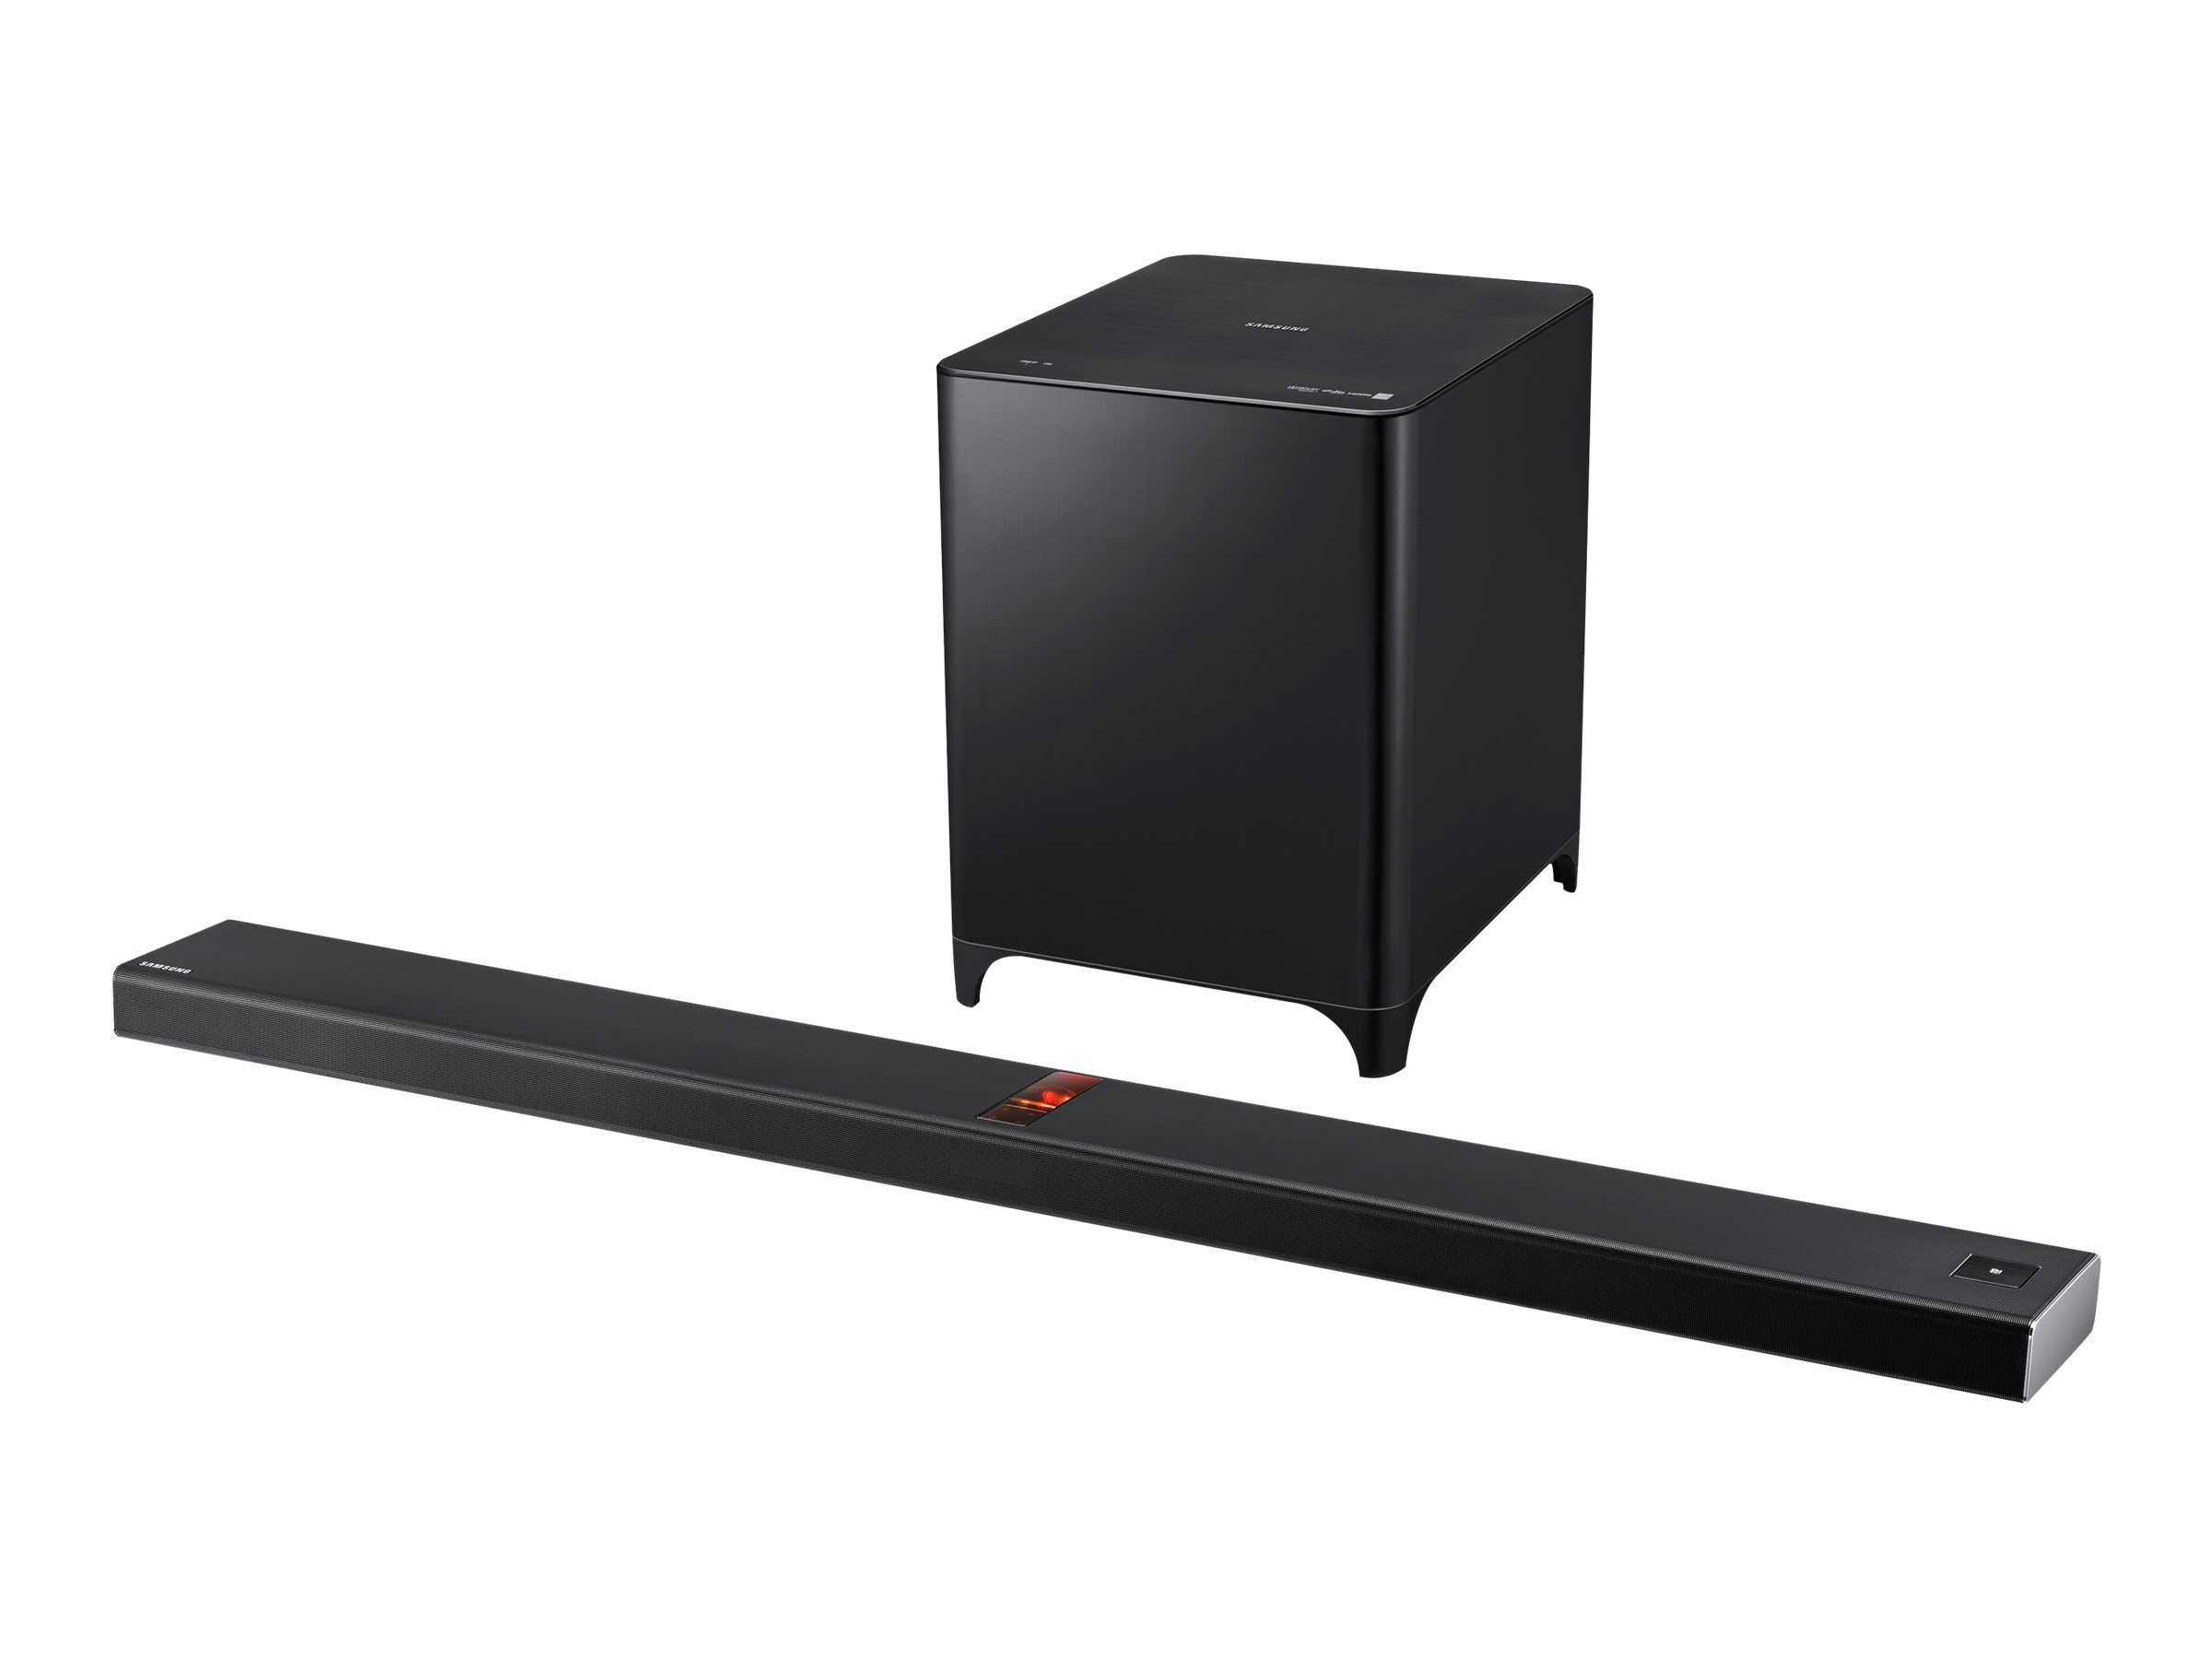 Samsung AirTrack HW-F850 - sound bar system - for home theater - wireless